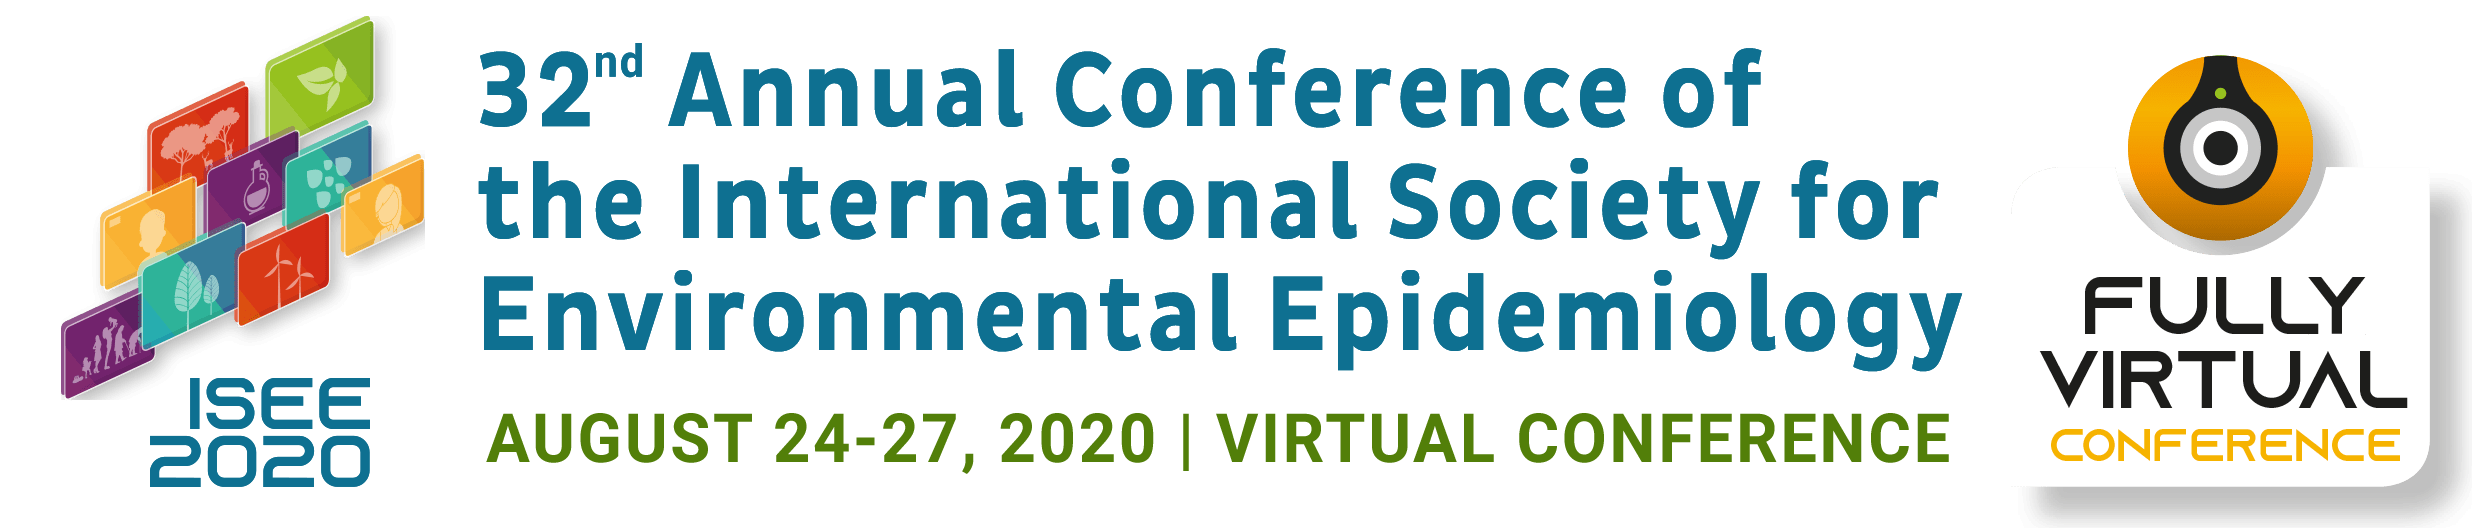 ISEE 2020 Conference on Environmental Epidemiology